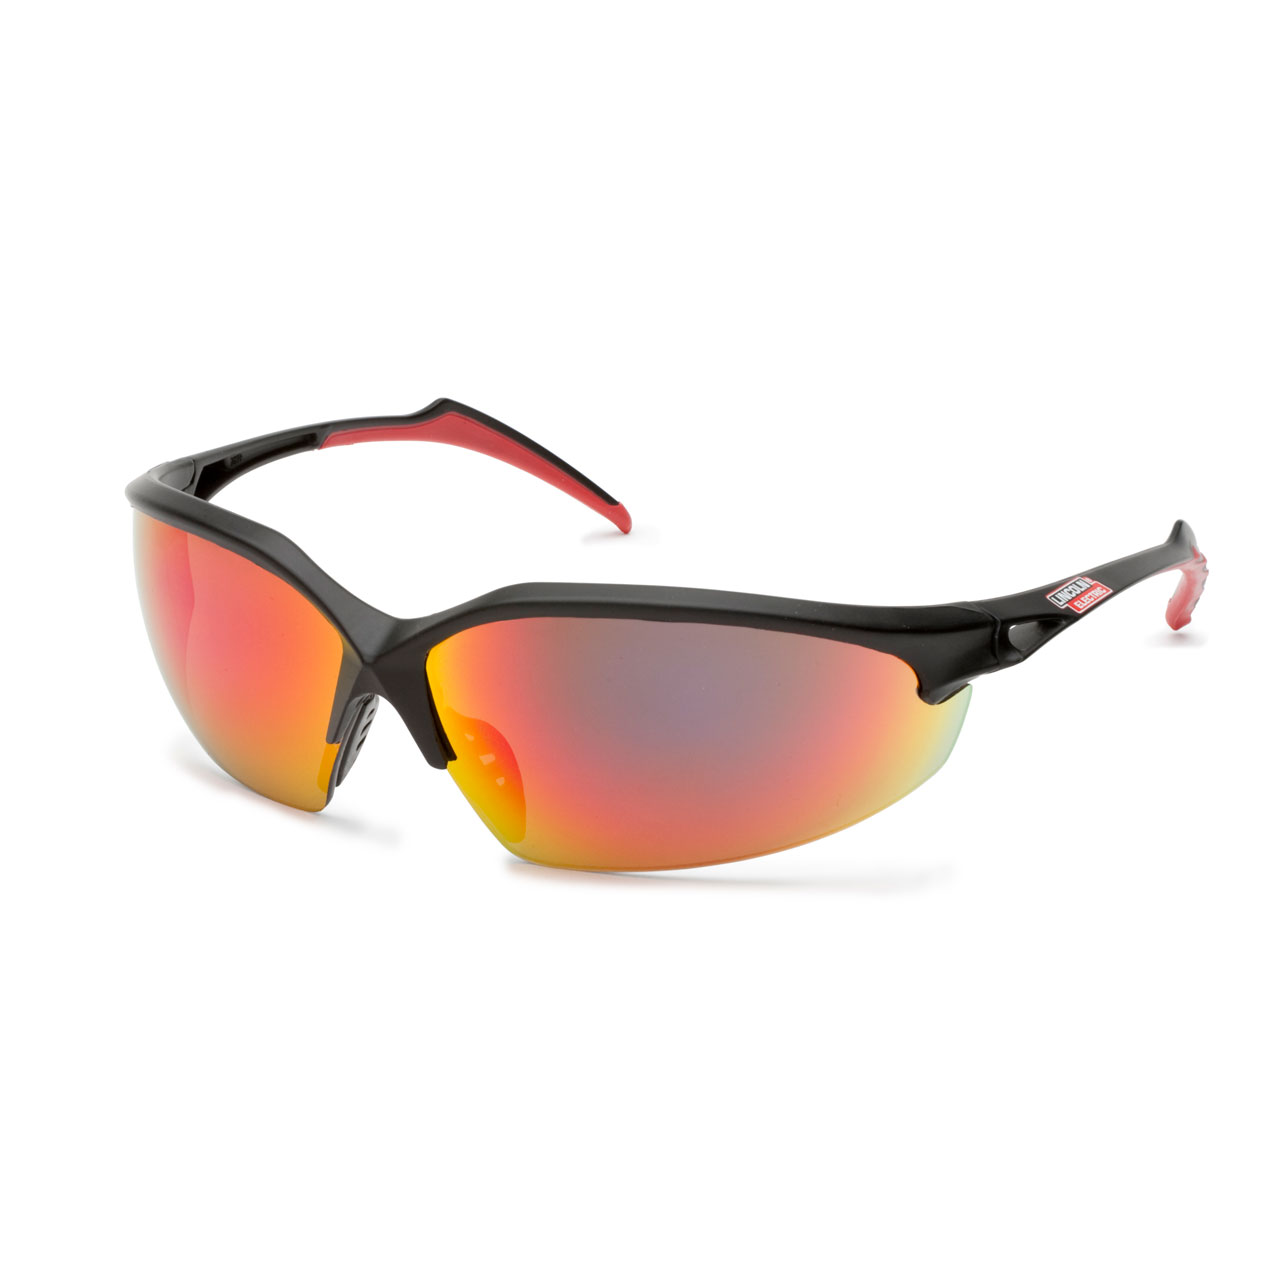 Lincoln Electric K2970-1 Finish Line Lightweight Outdoor Safety Glasses by Lincoln Electric